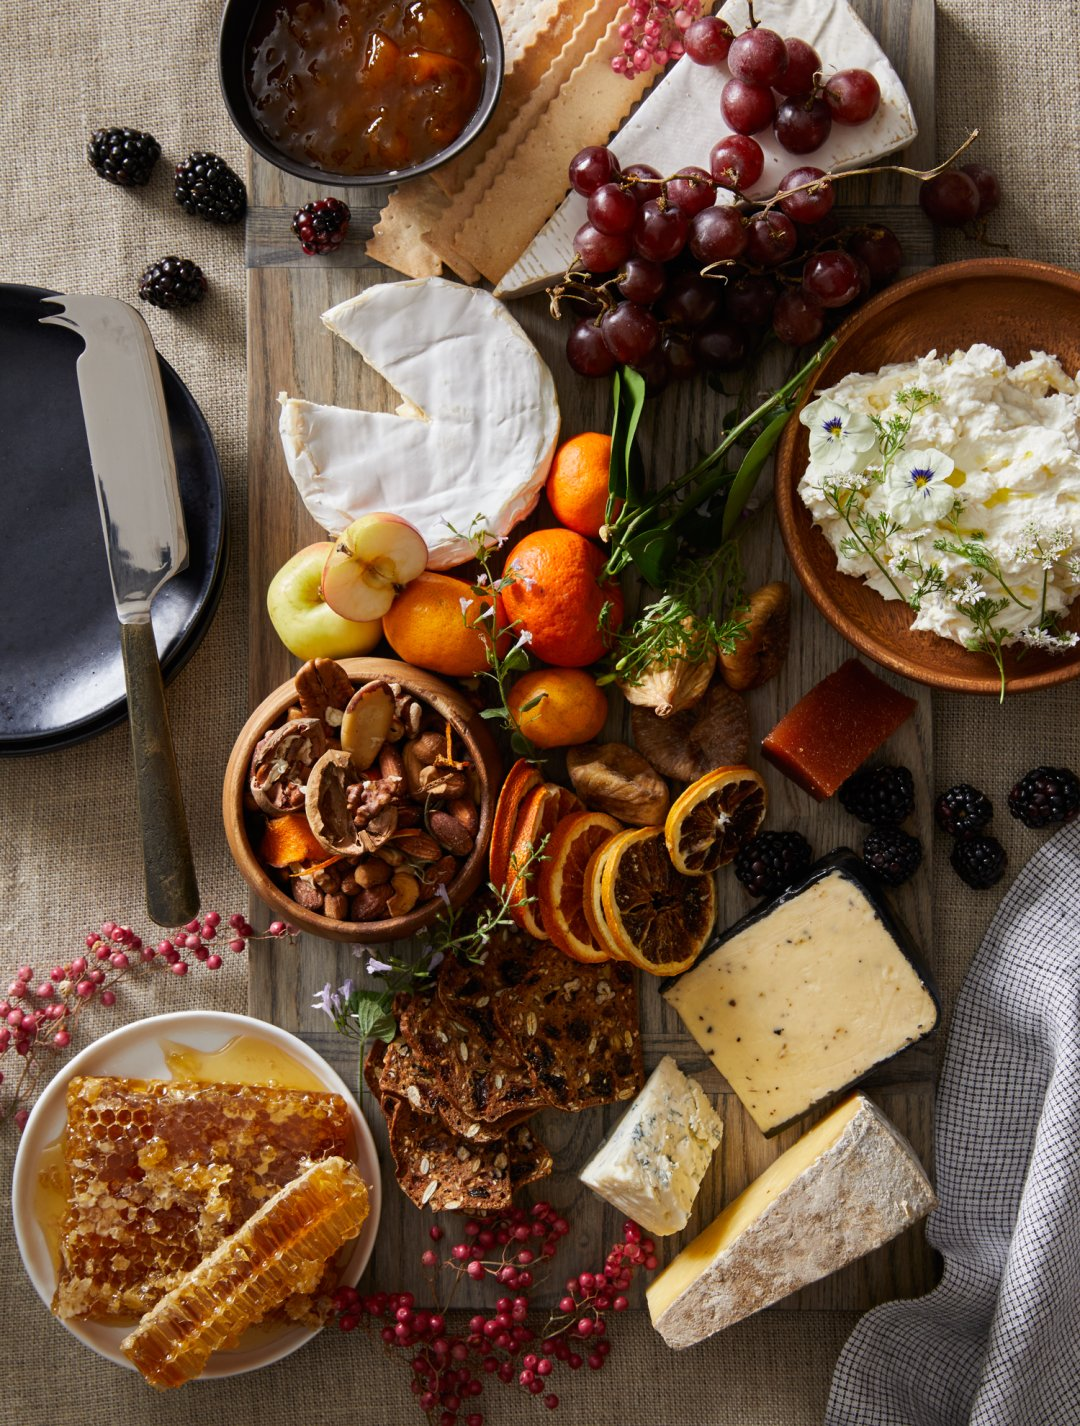 Cheese board with fruit, honey and crackers